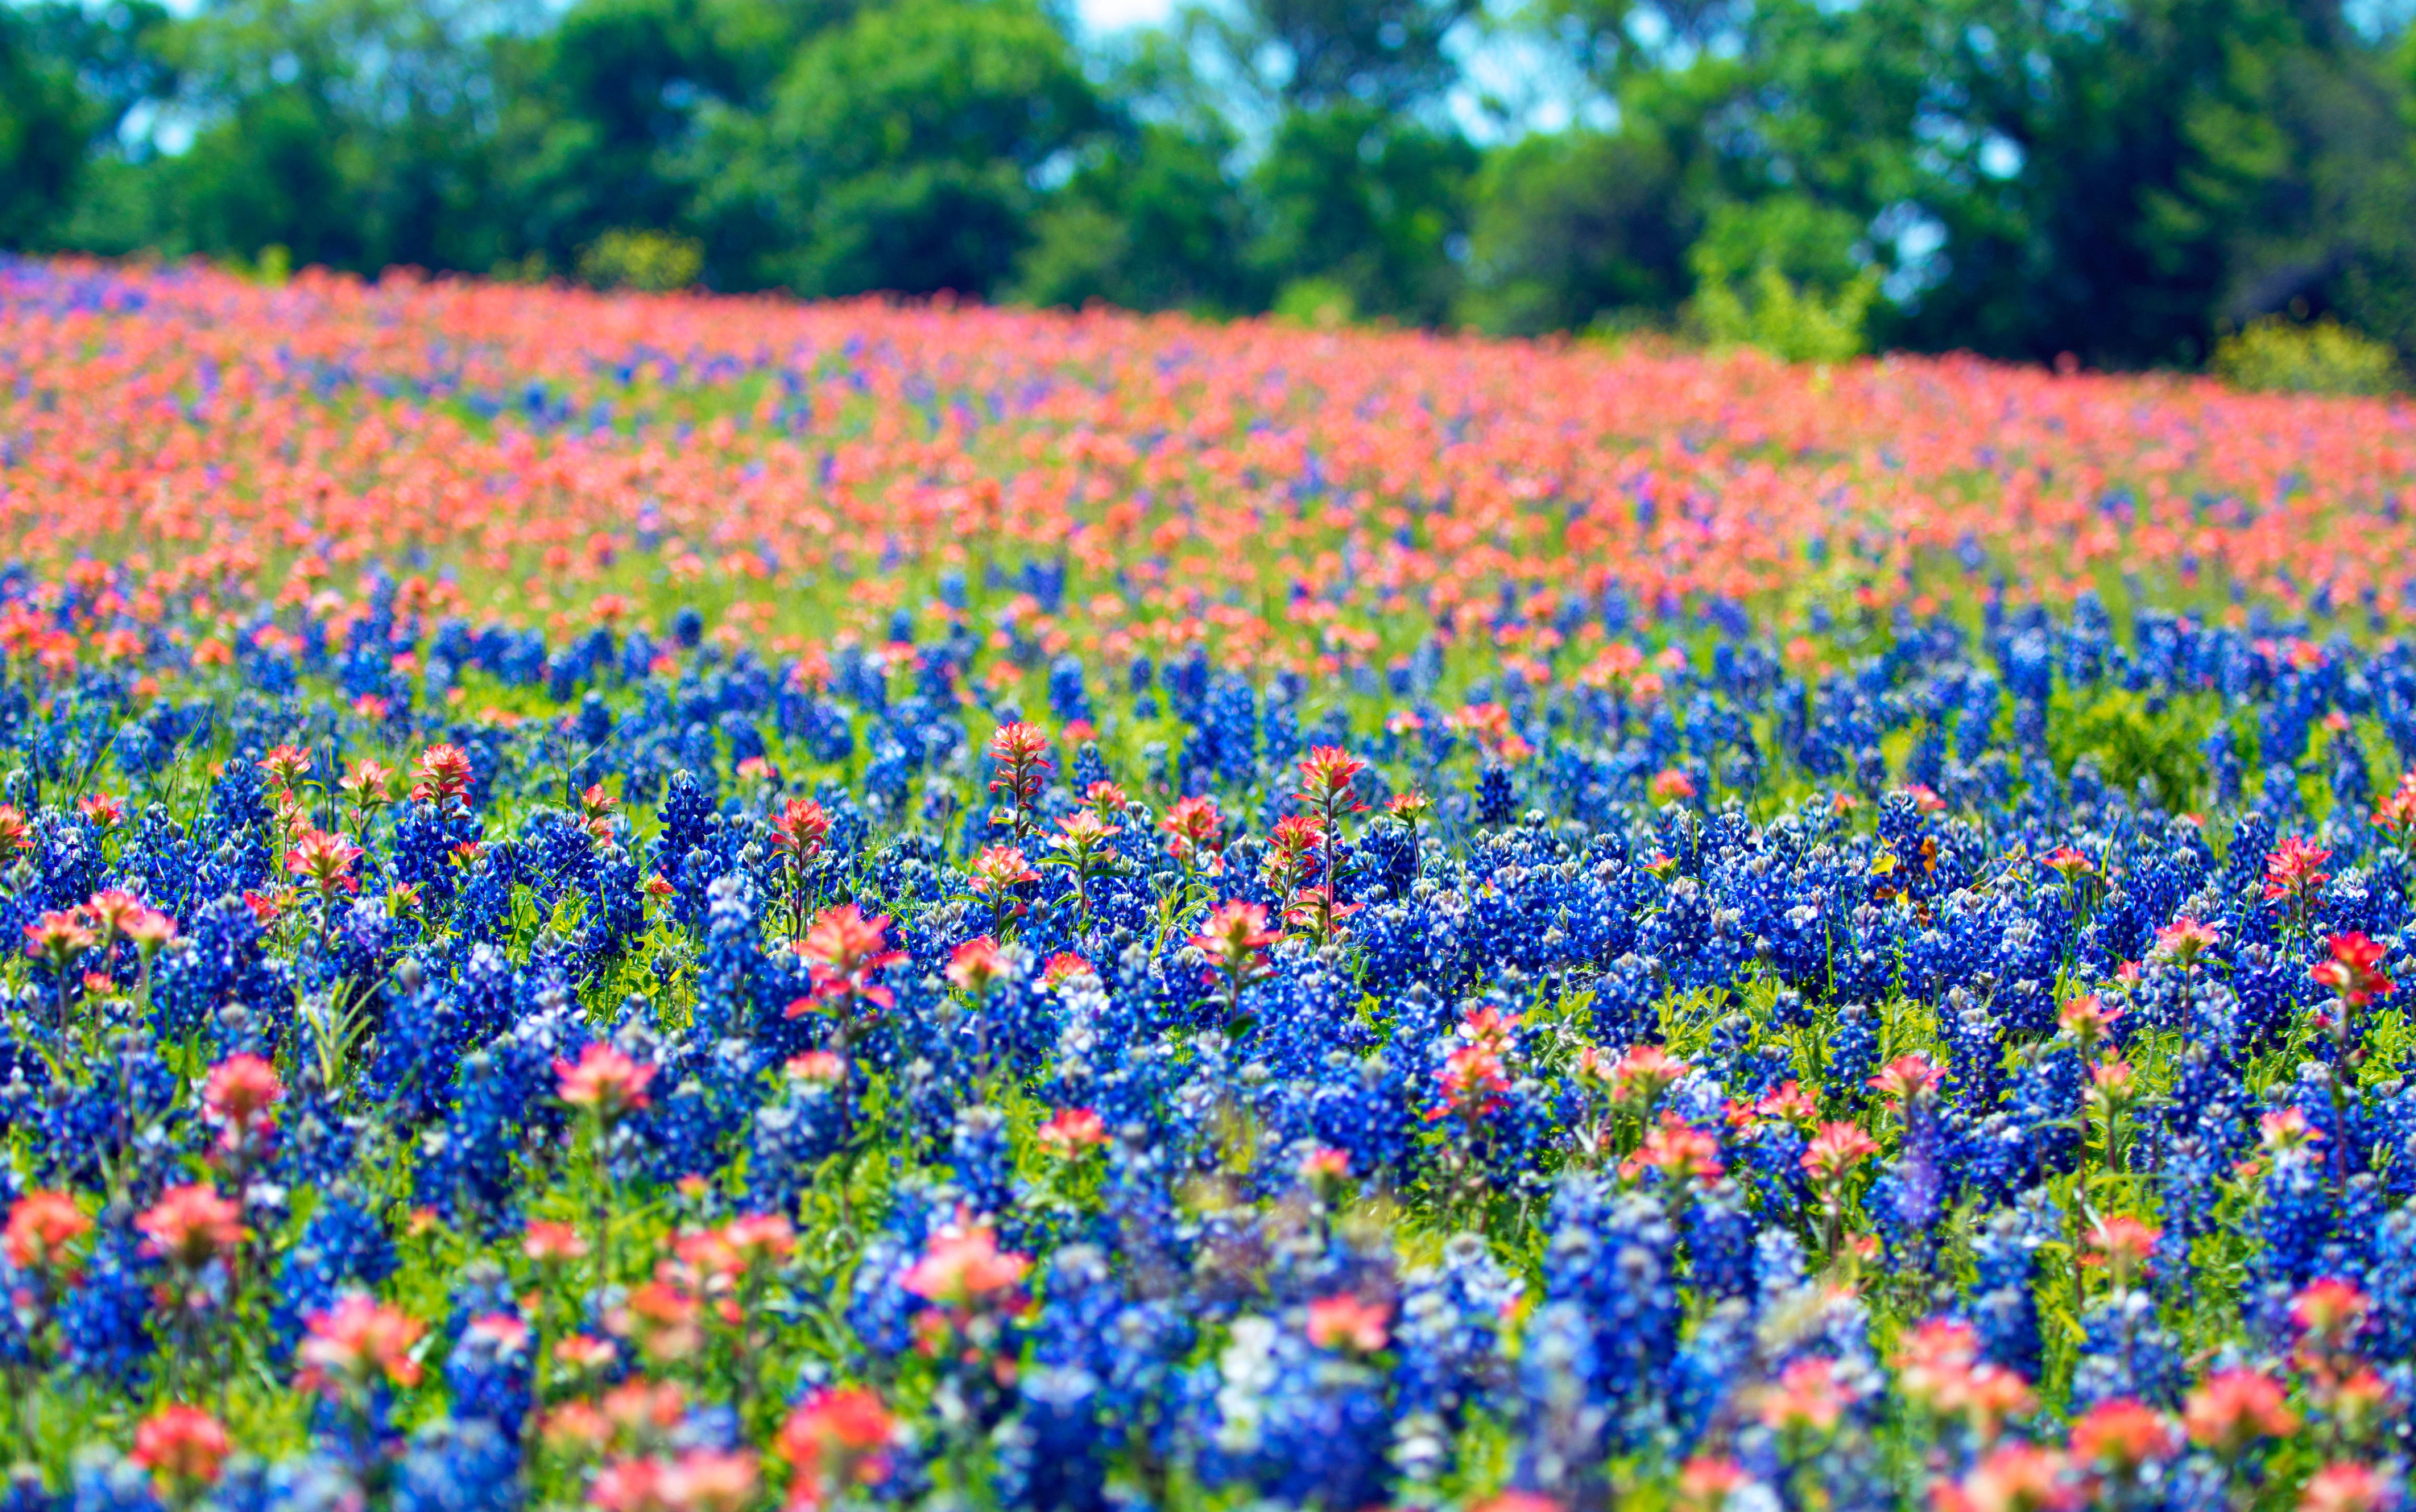 Bluebonnets, Texas' vibrant state flower, are out in full swing in Austin